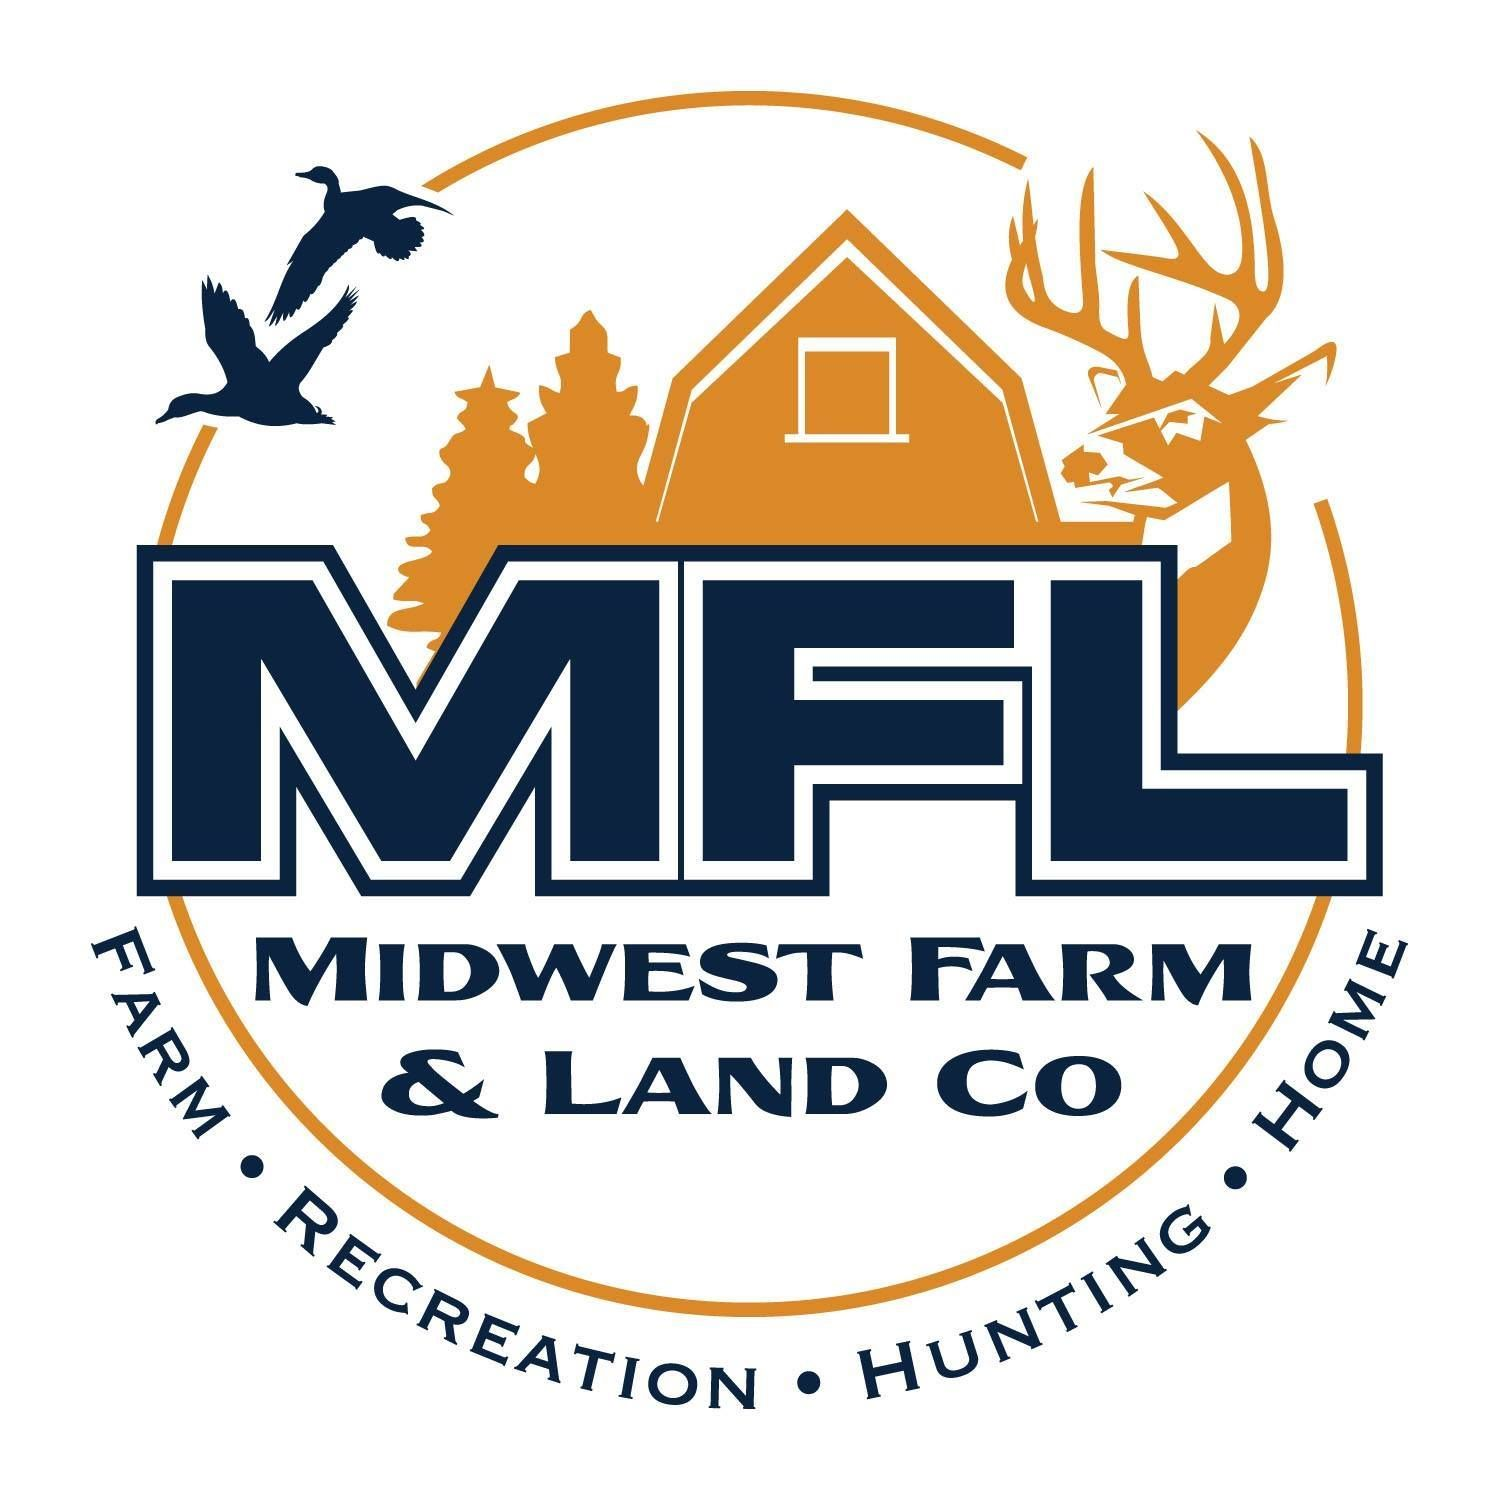 Midwest Farm and Land Co. is the Real Estate Agency the Residents of Centralia, IL Can Rely On